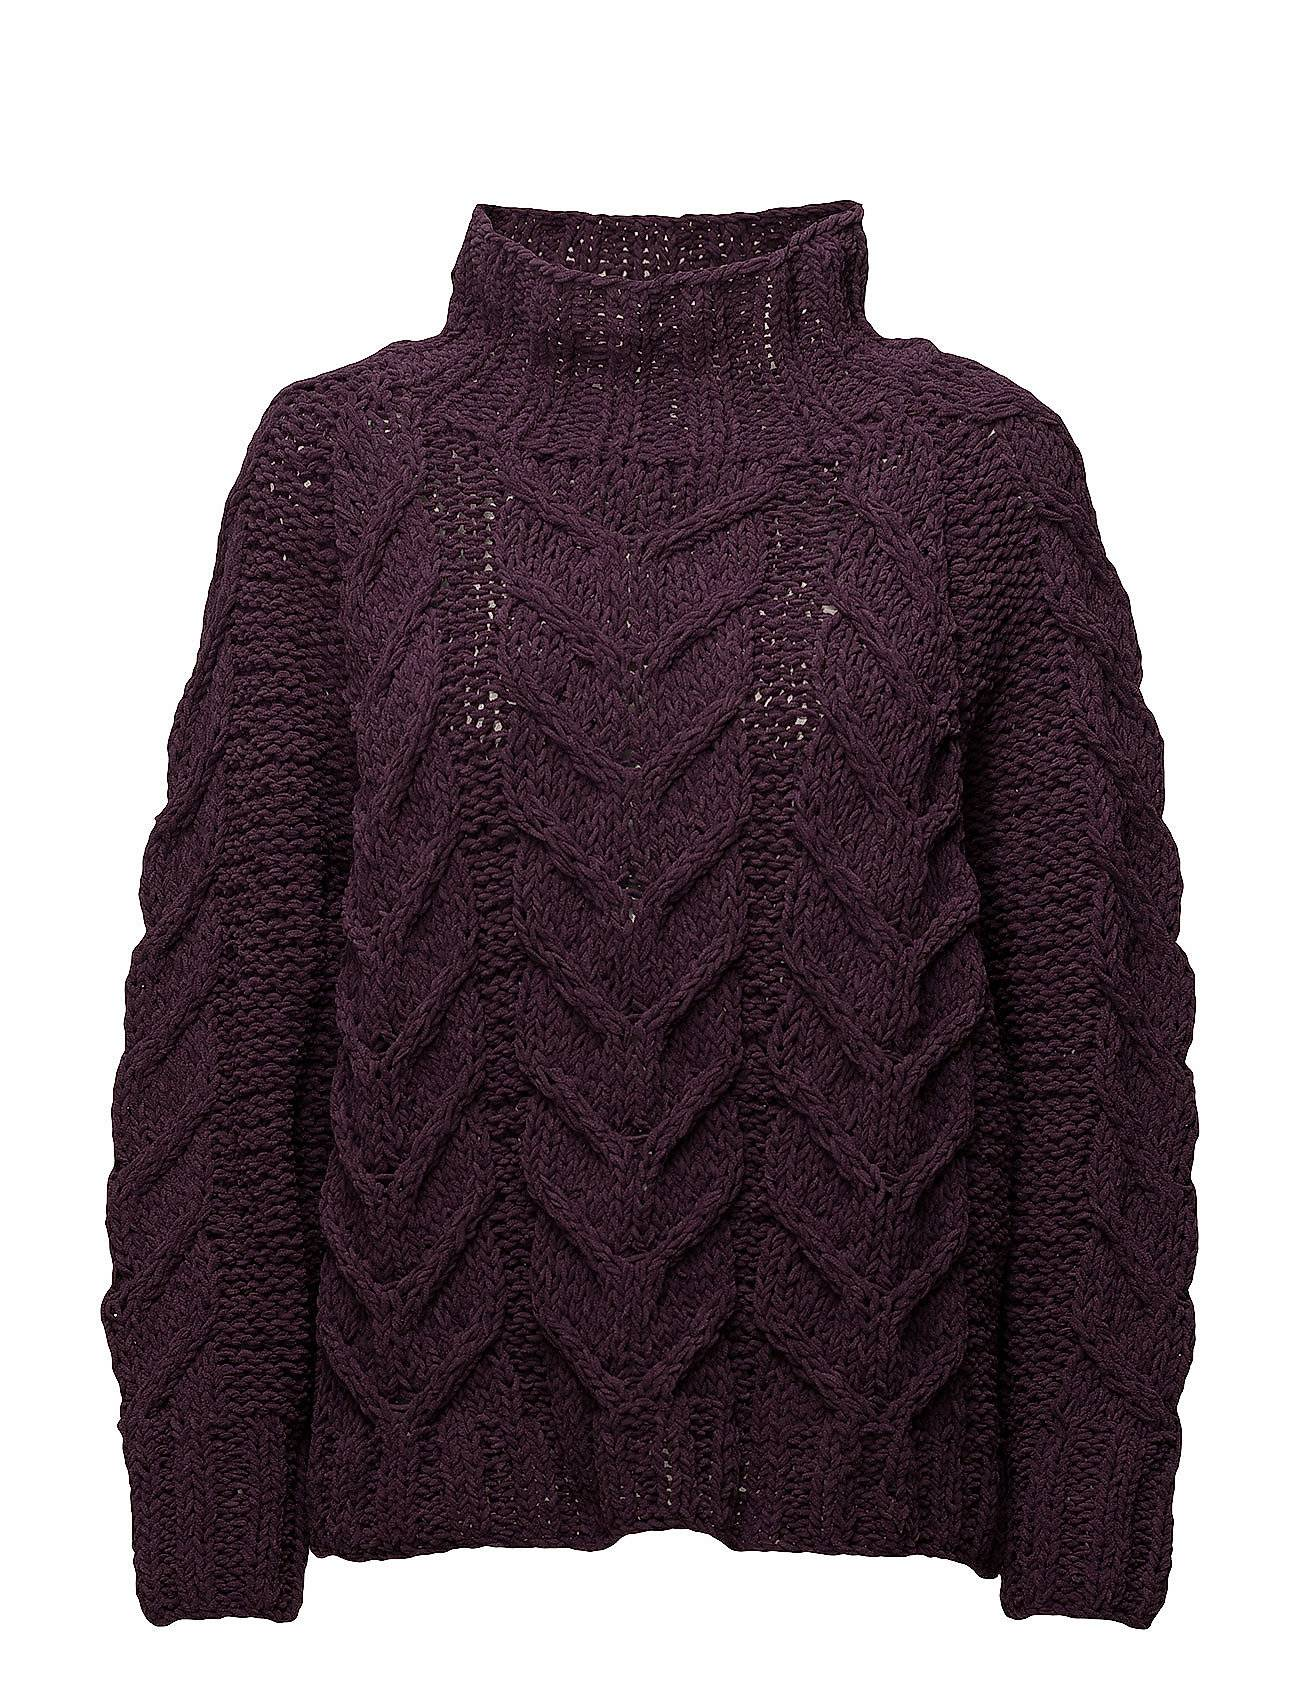 Selected Femme Sfblair Ls Highneck Knit